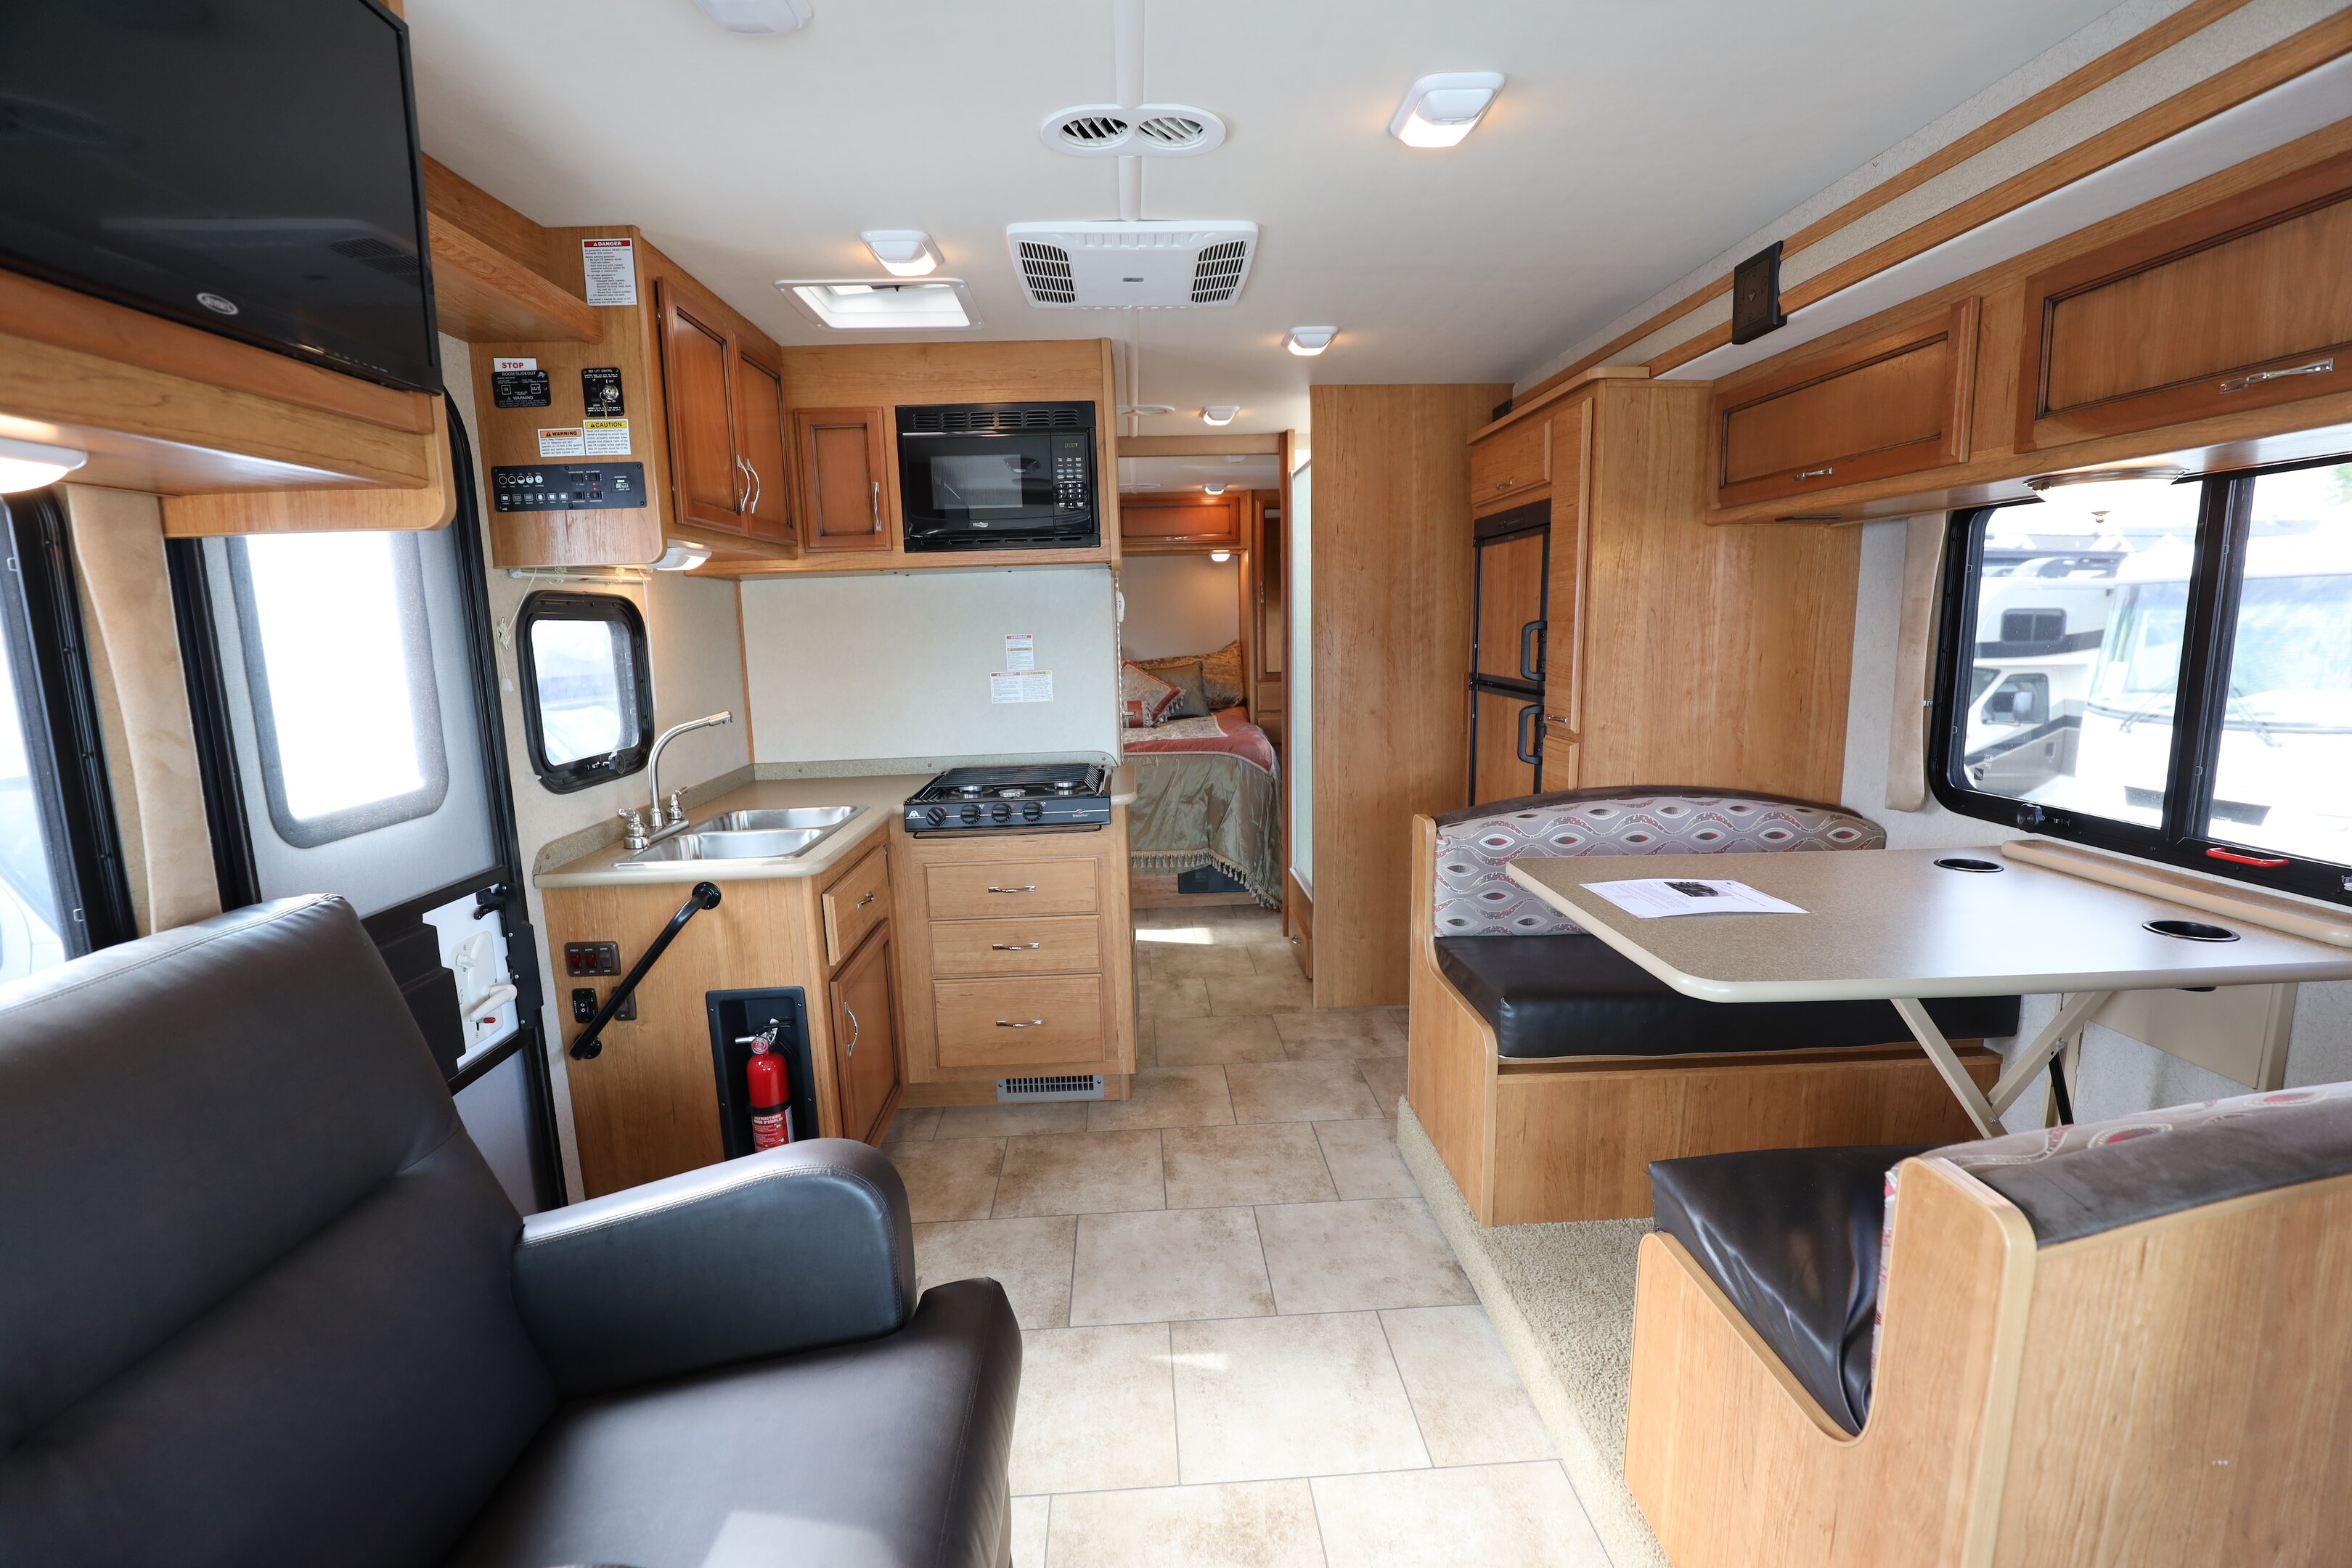 Used 2016 FLEETWOOD Flair 26D Classe A VR/RV For Sale at